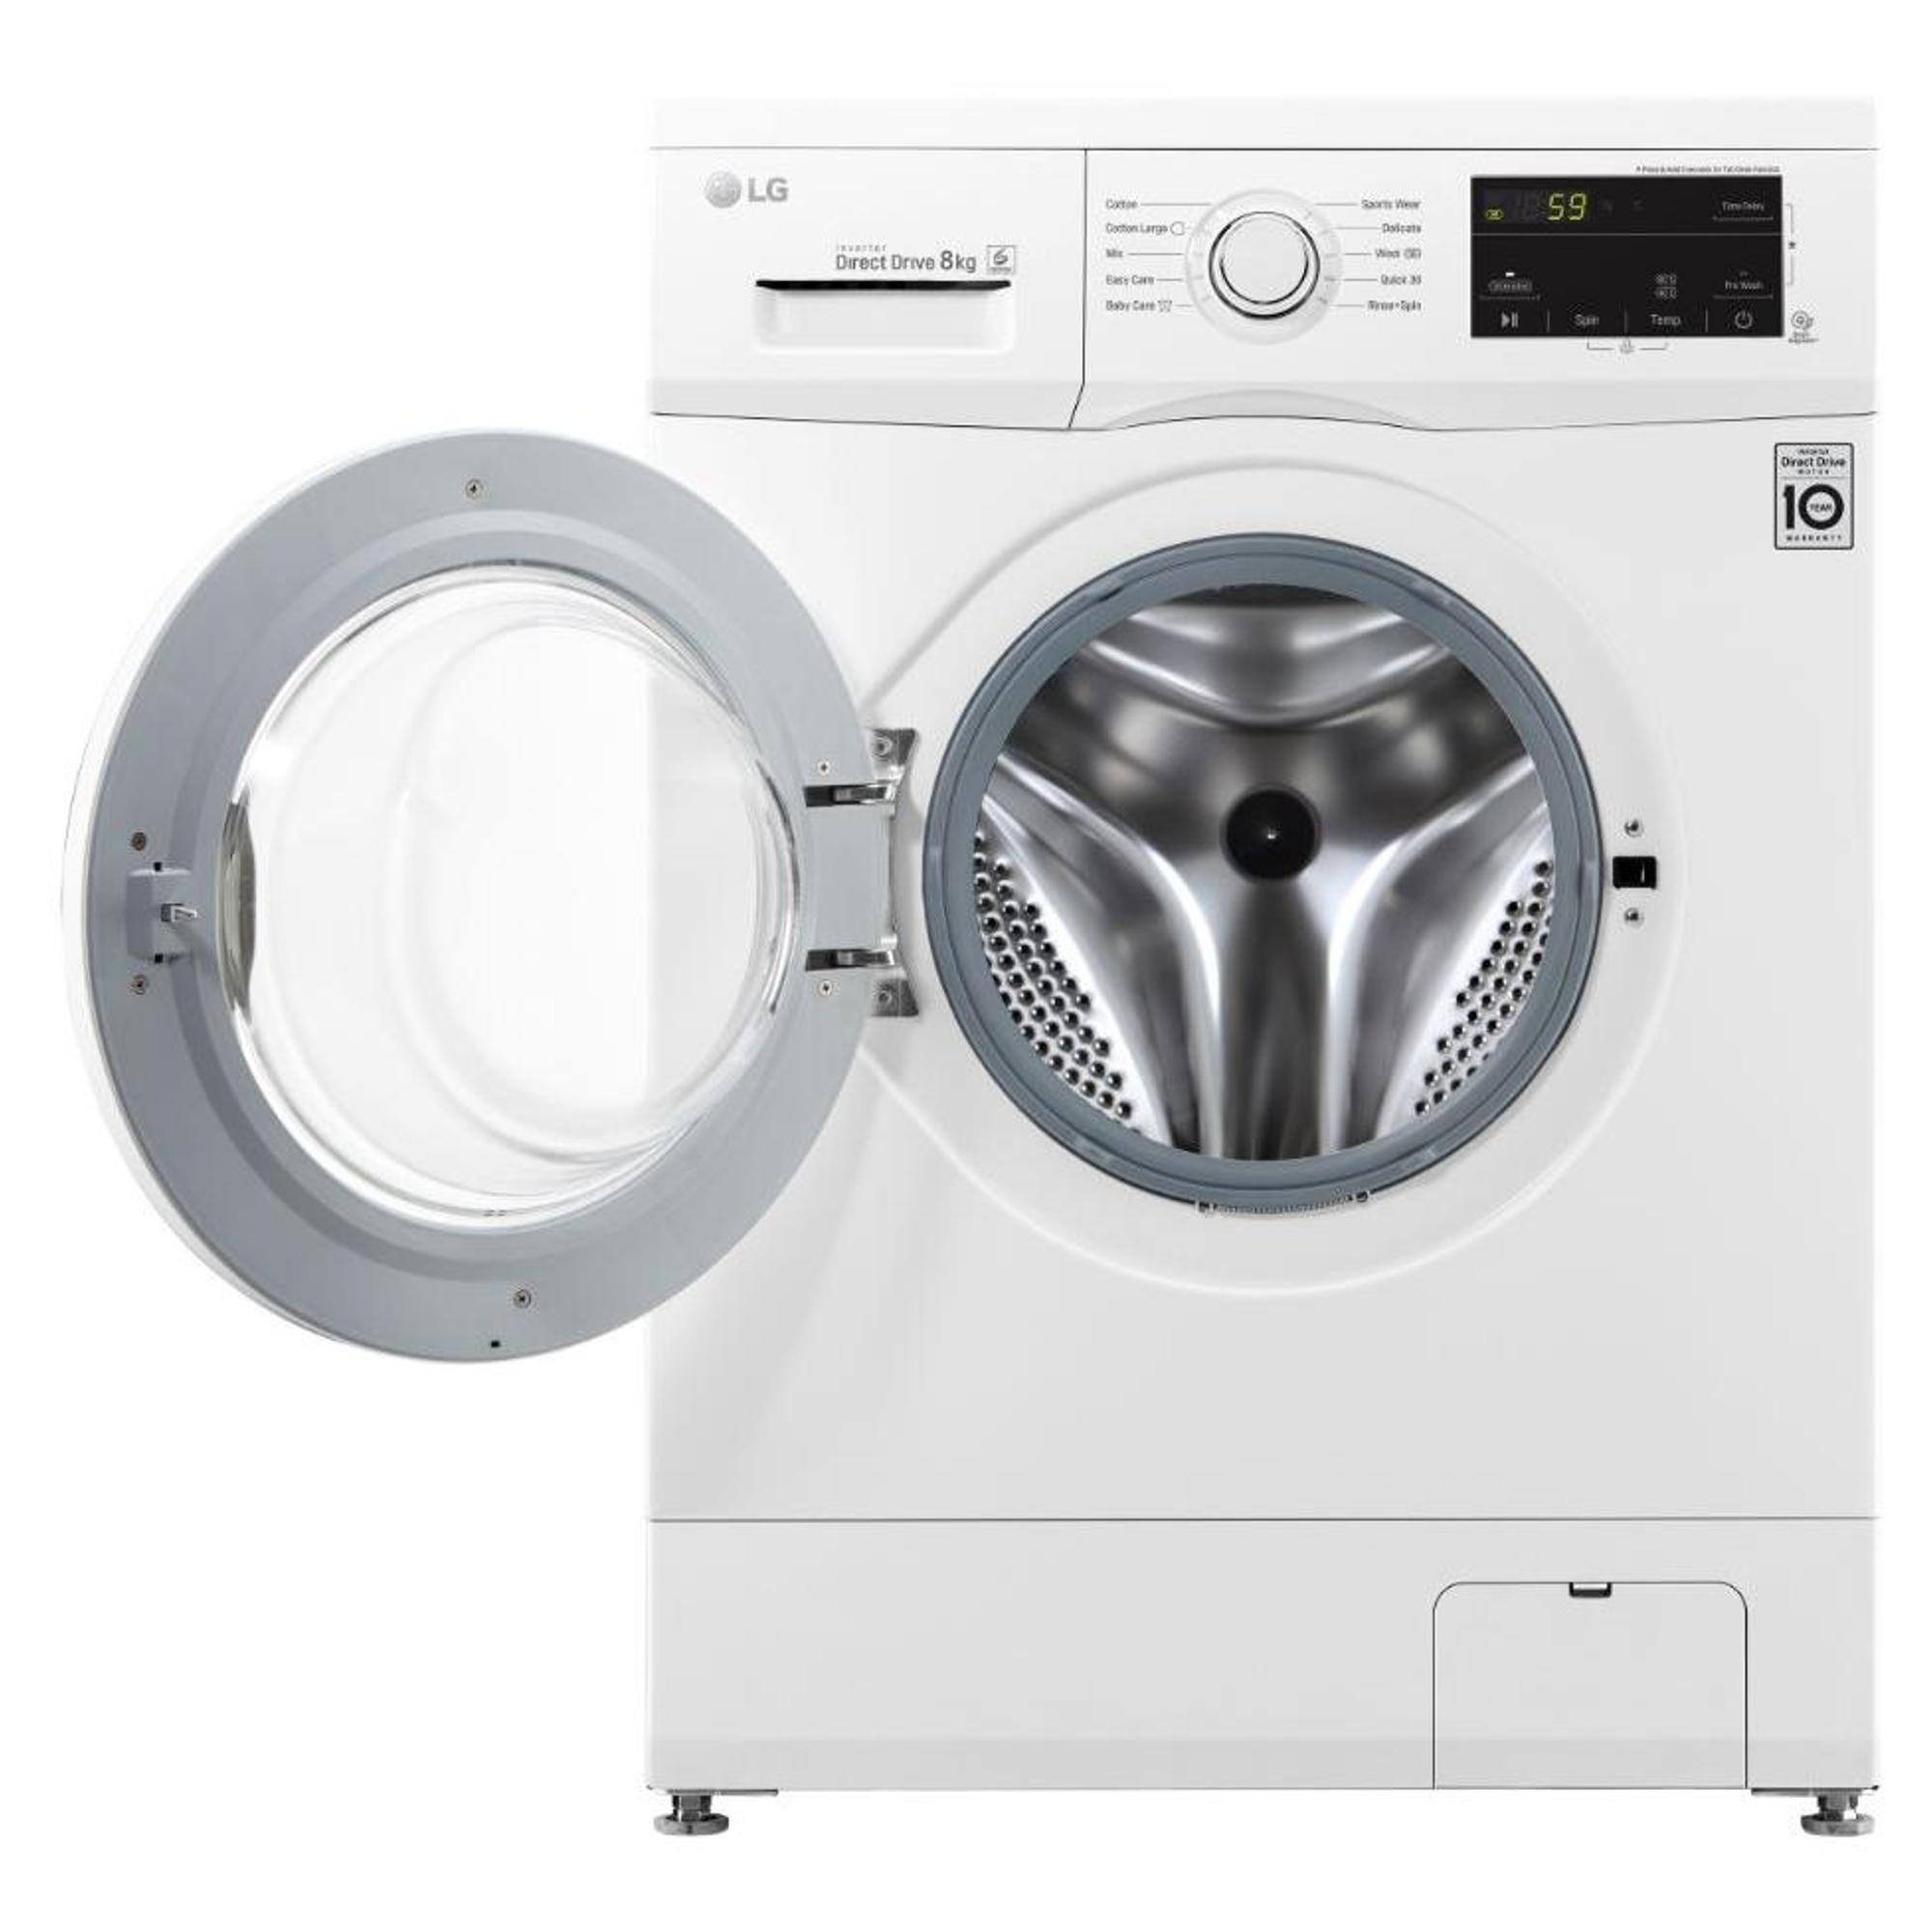 LG 8kg Washing Machine in White